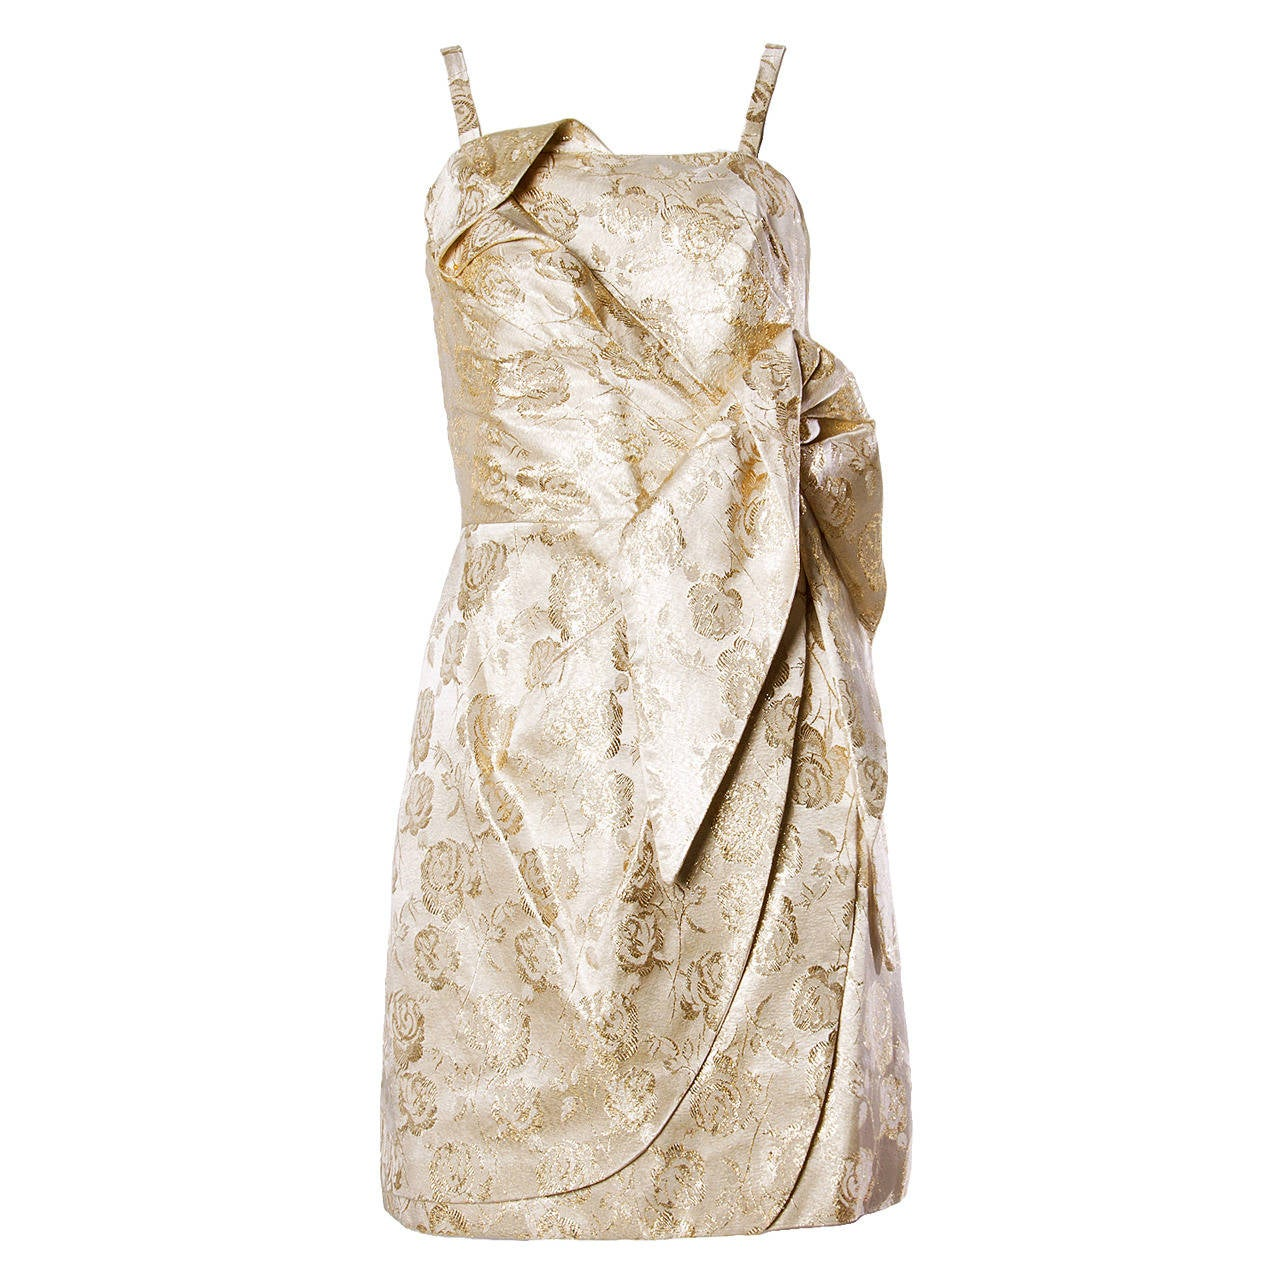 Lilli Diamond Vintage 1960s Metallic Brocade Sculptural Cocktail Dress For Sale